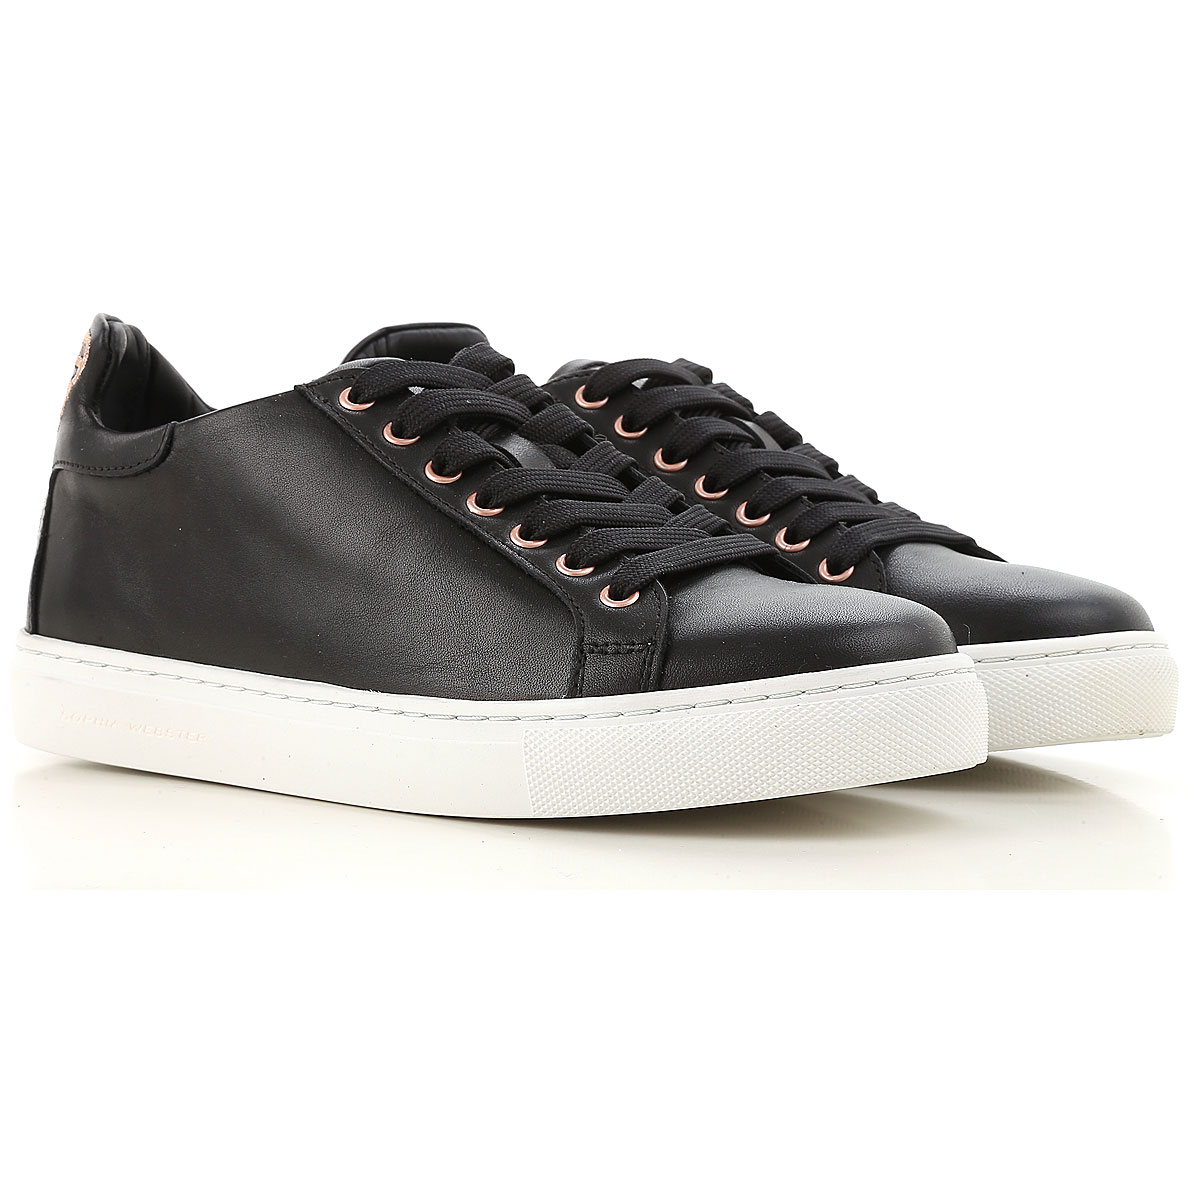 Sophia Webster Sneakers for Women in Outlet Black USA - GOOFASH